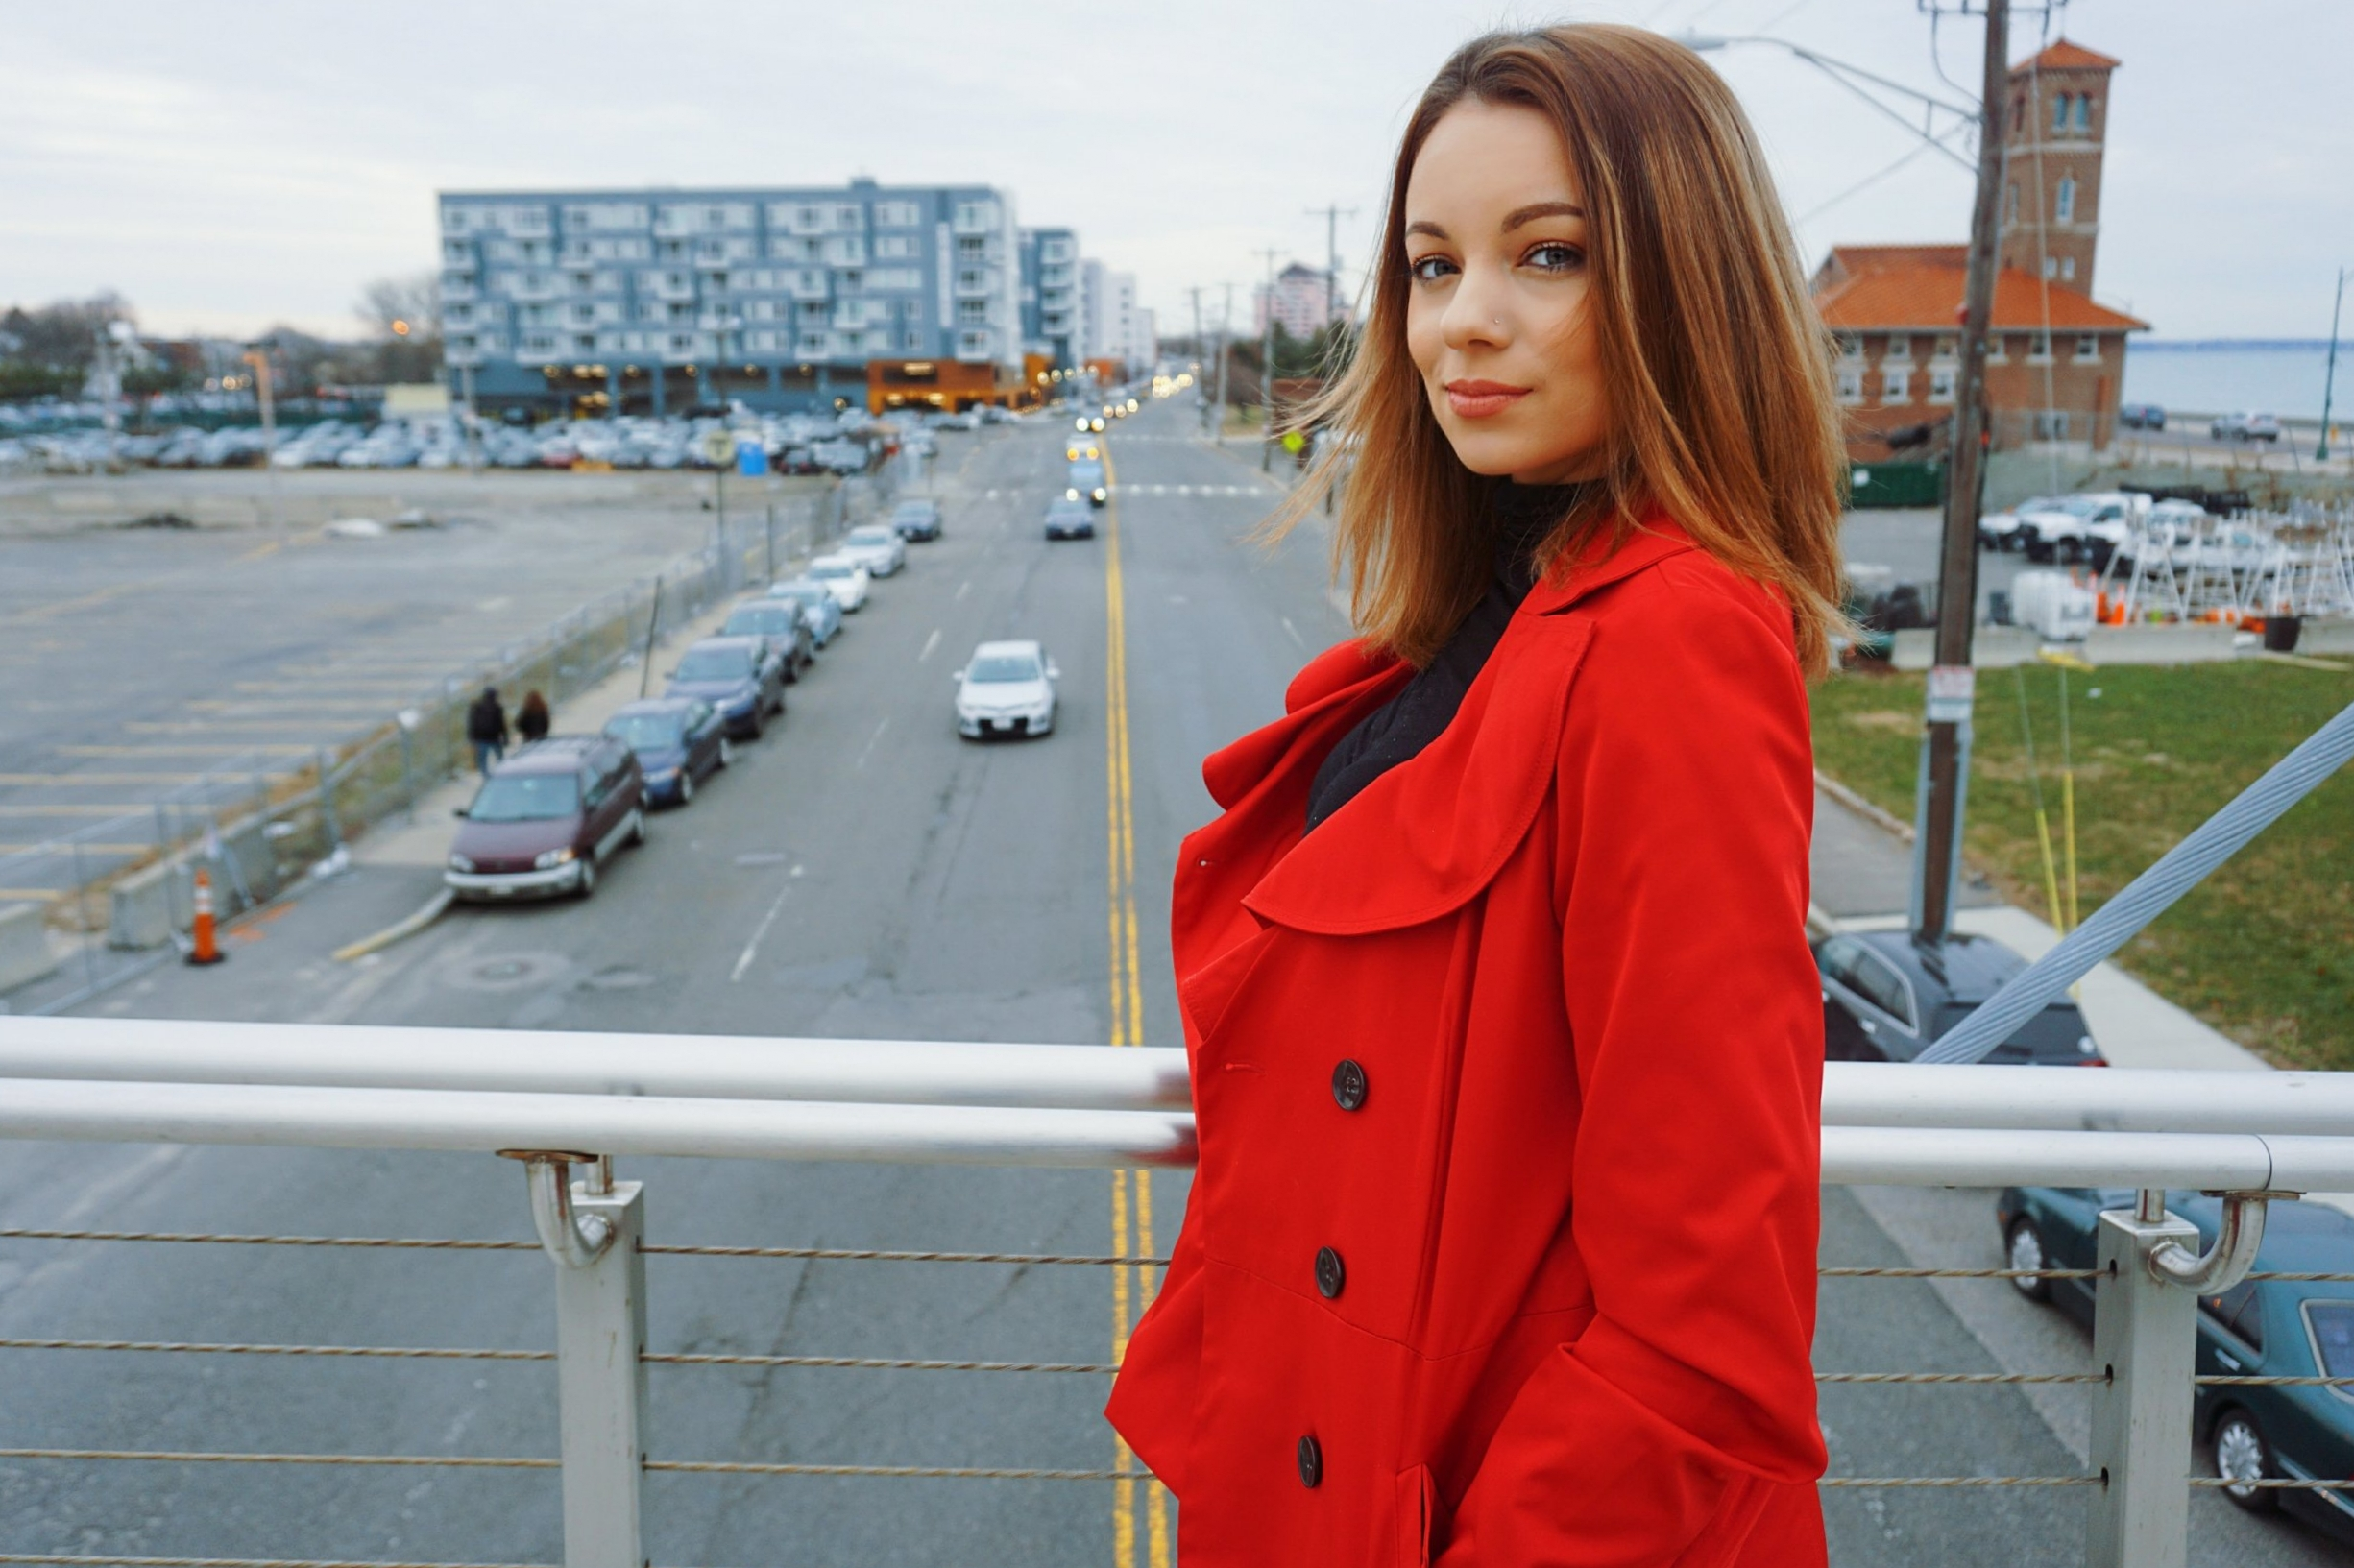 A girl wearing a red playful coat.